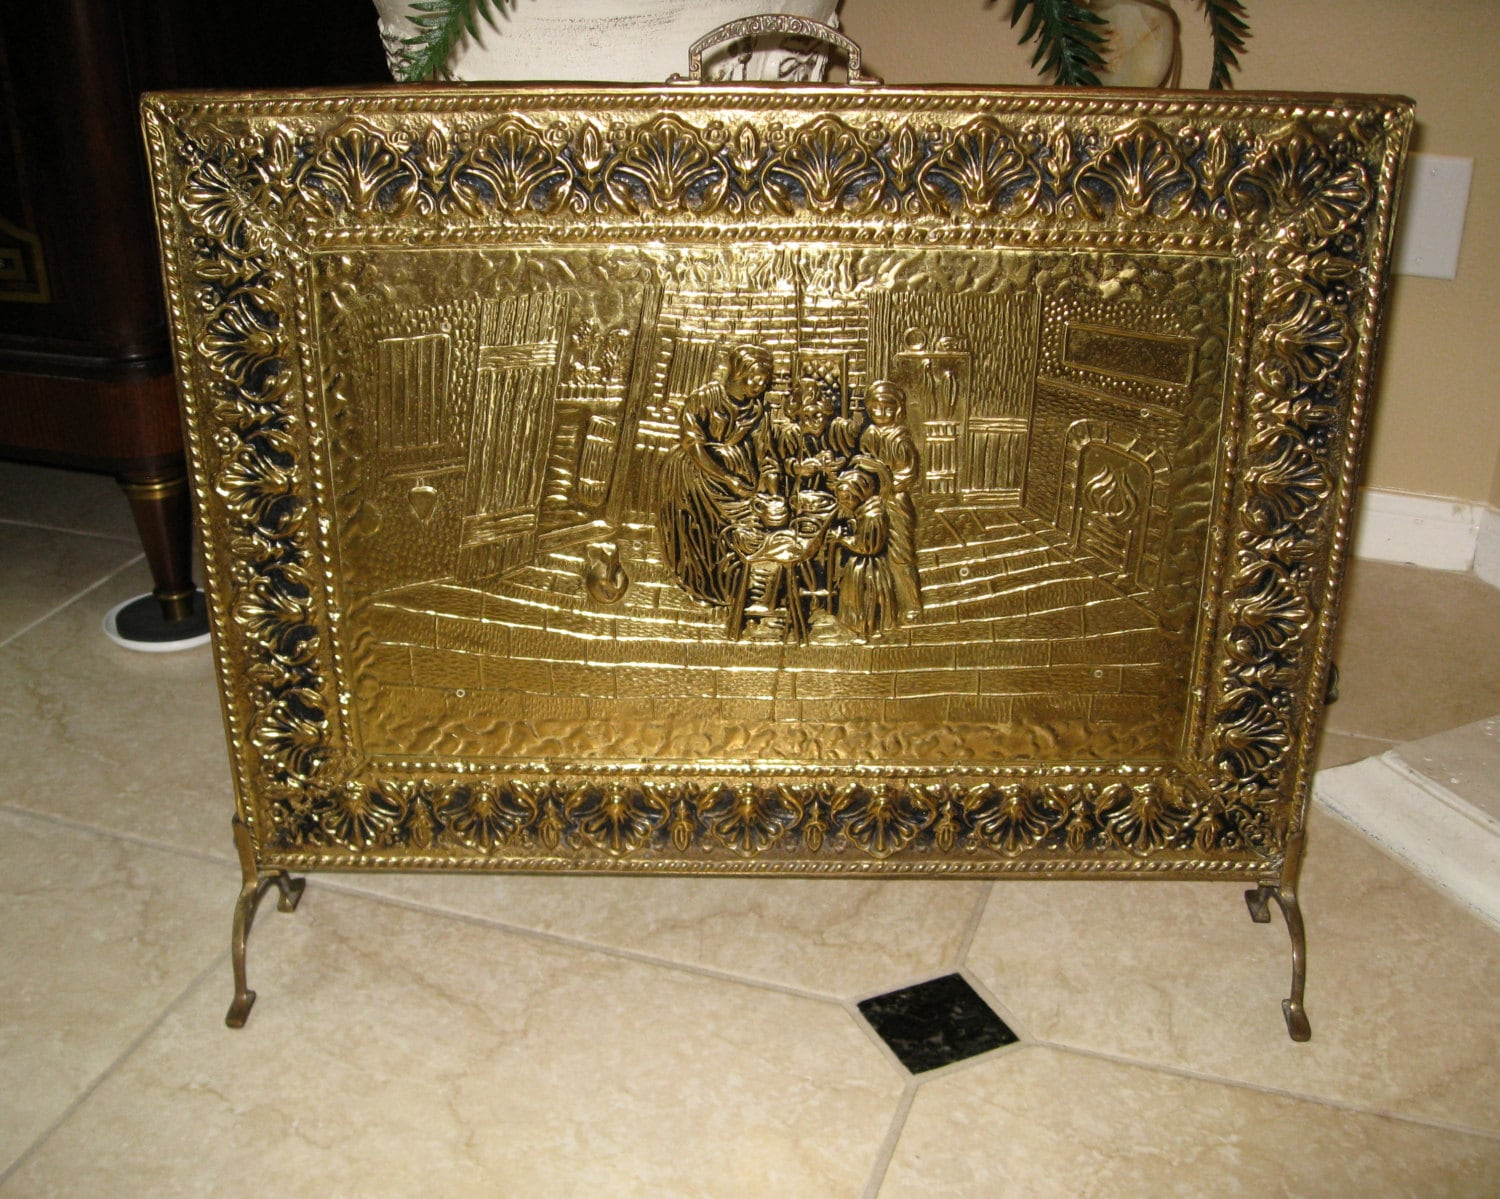 Antique European Hammered Amp Embossed Brass Fireplace Screen